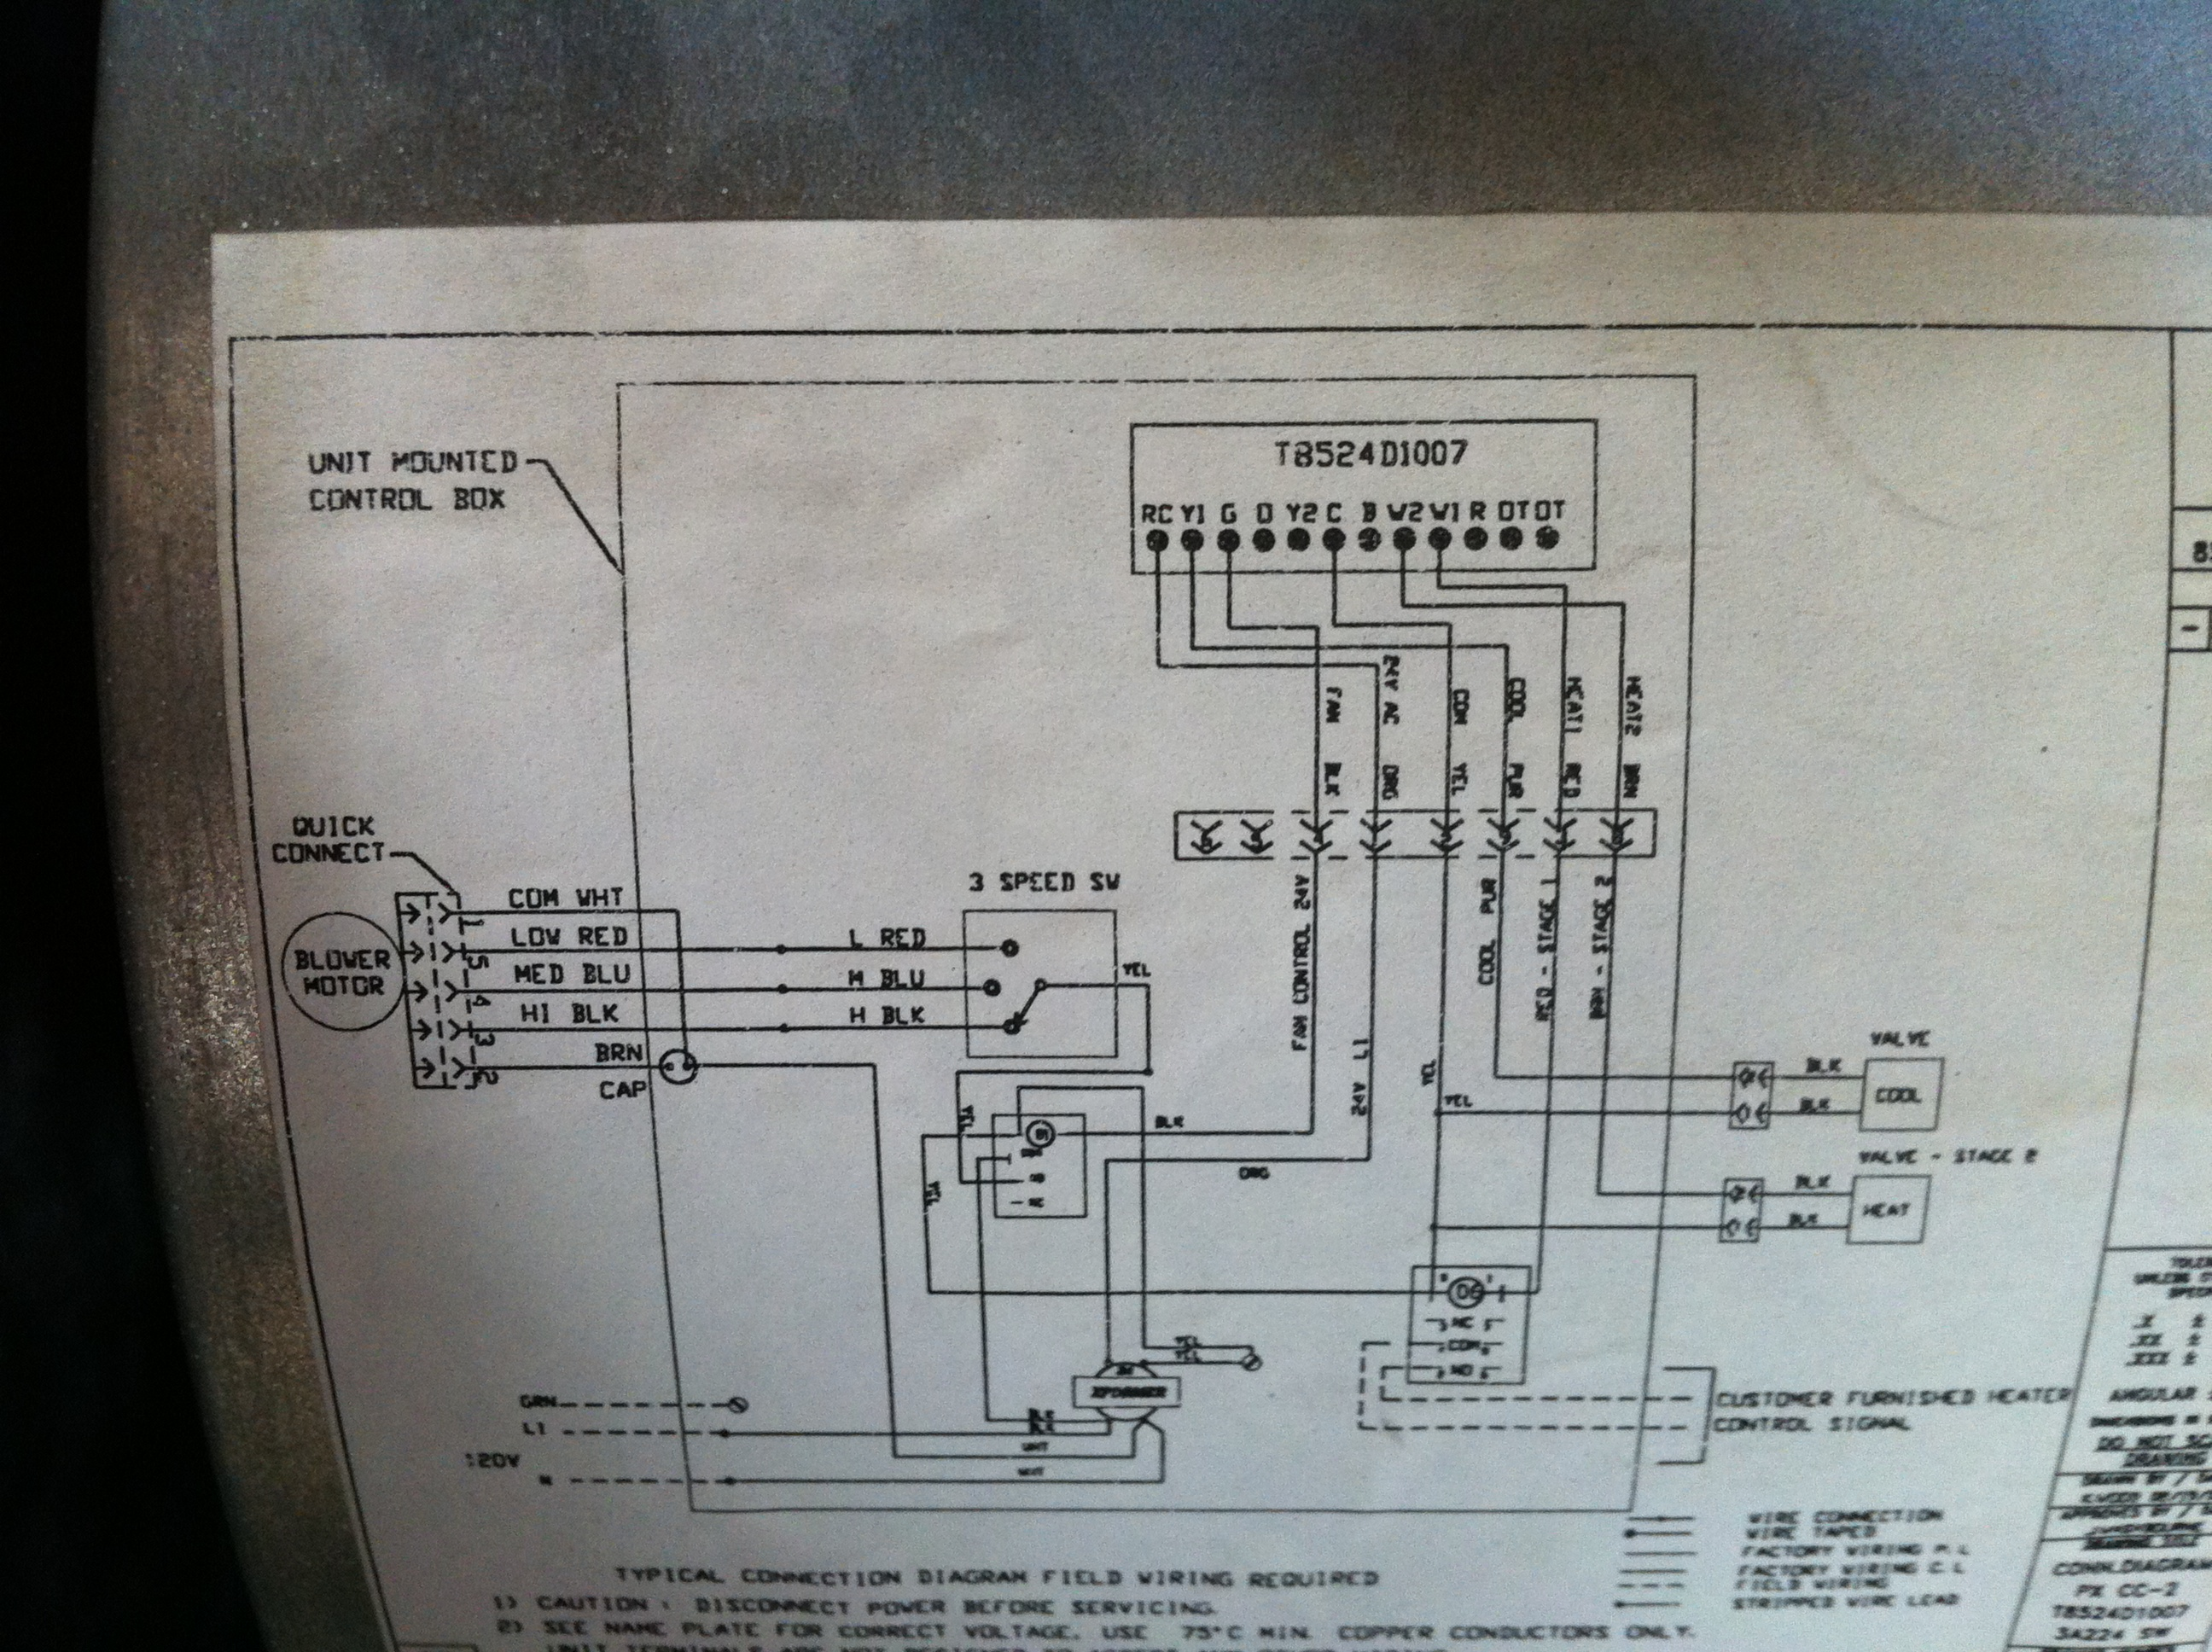 Wiring Diagram For Honeywell Th5220d : Honeywell thermostat th d wiring diagram